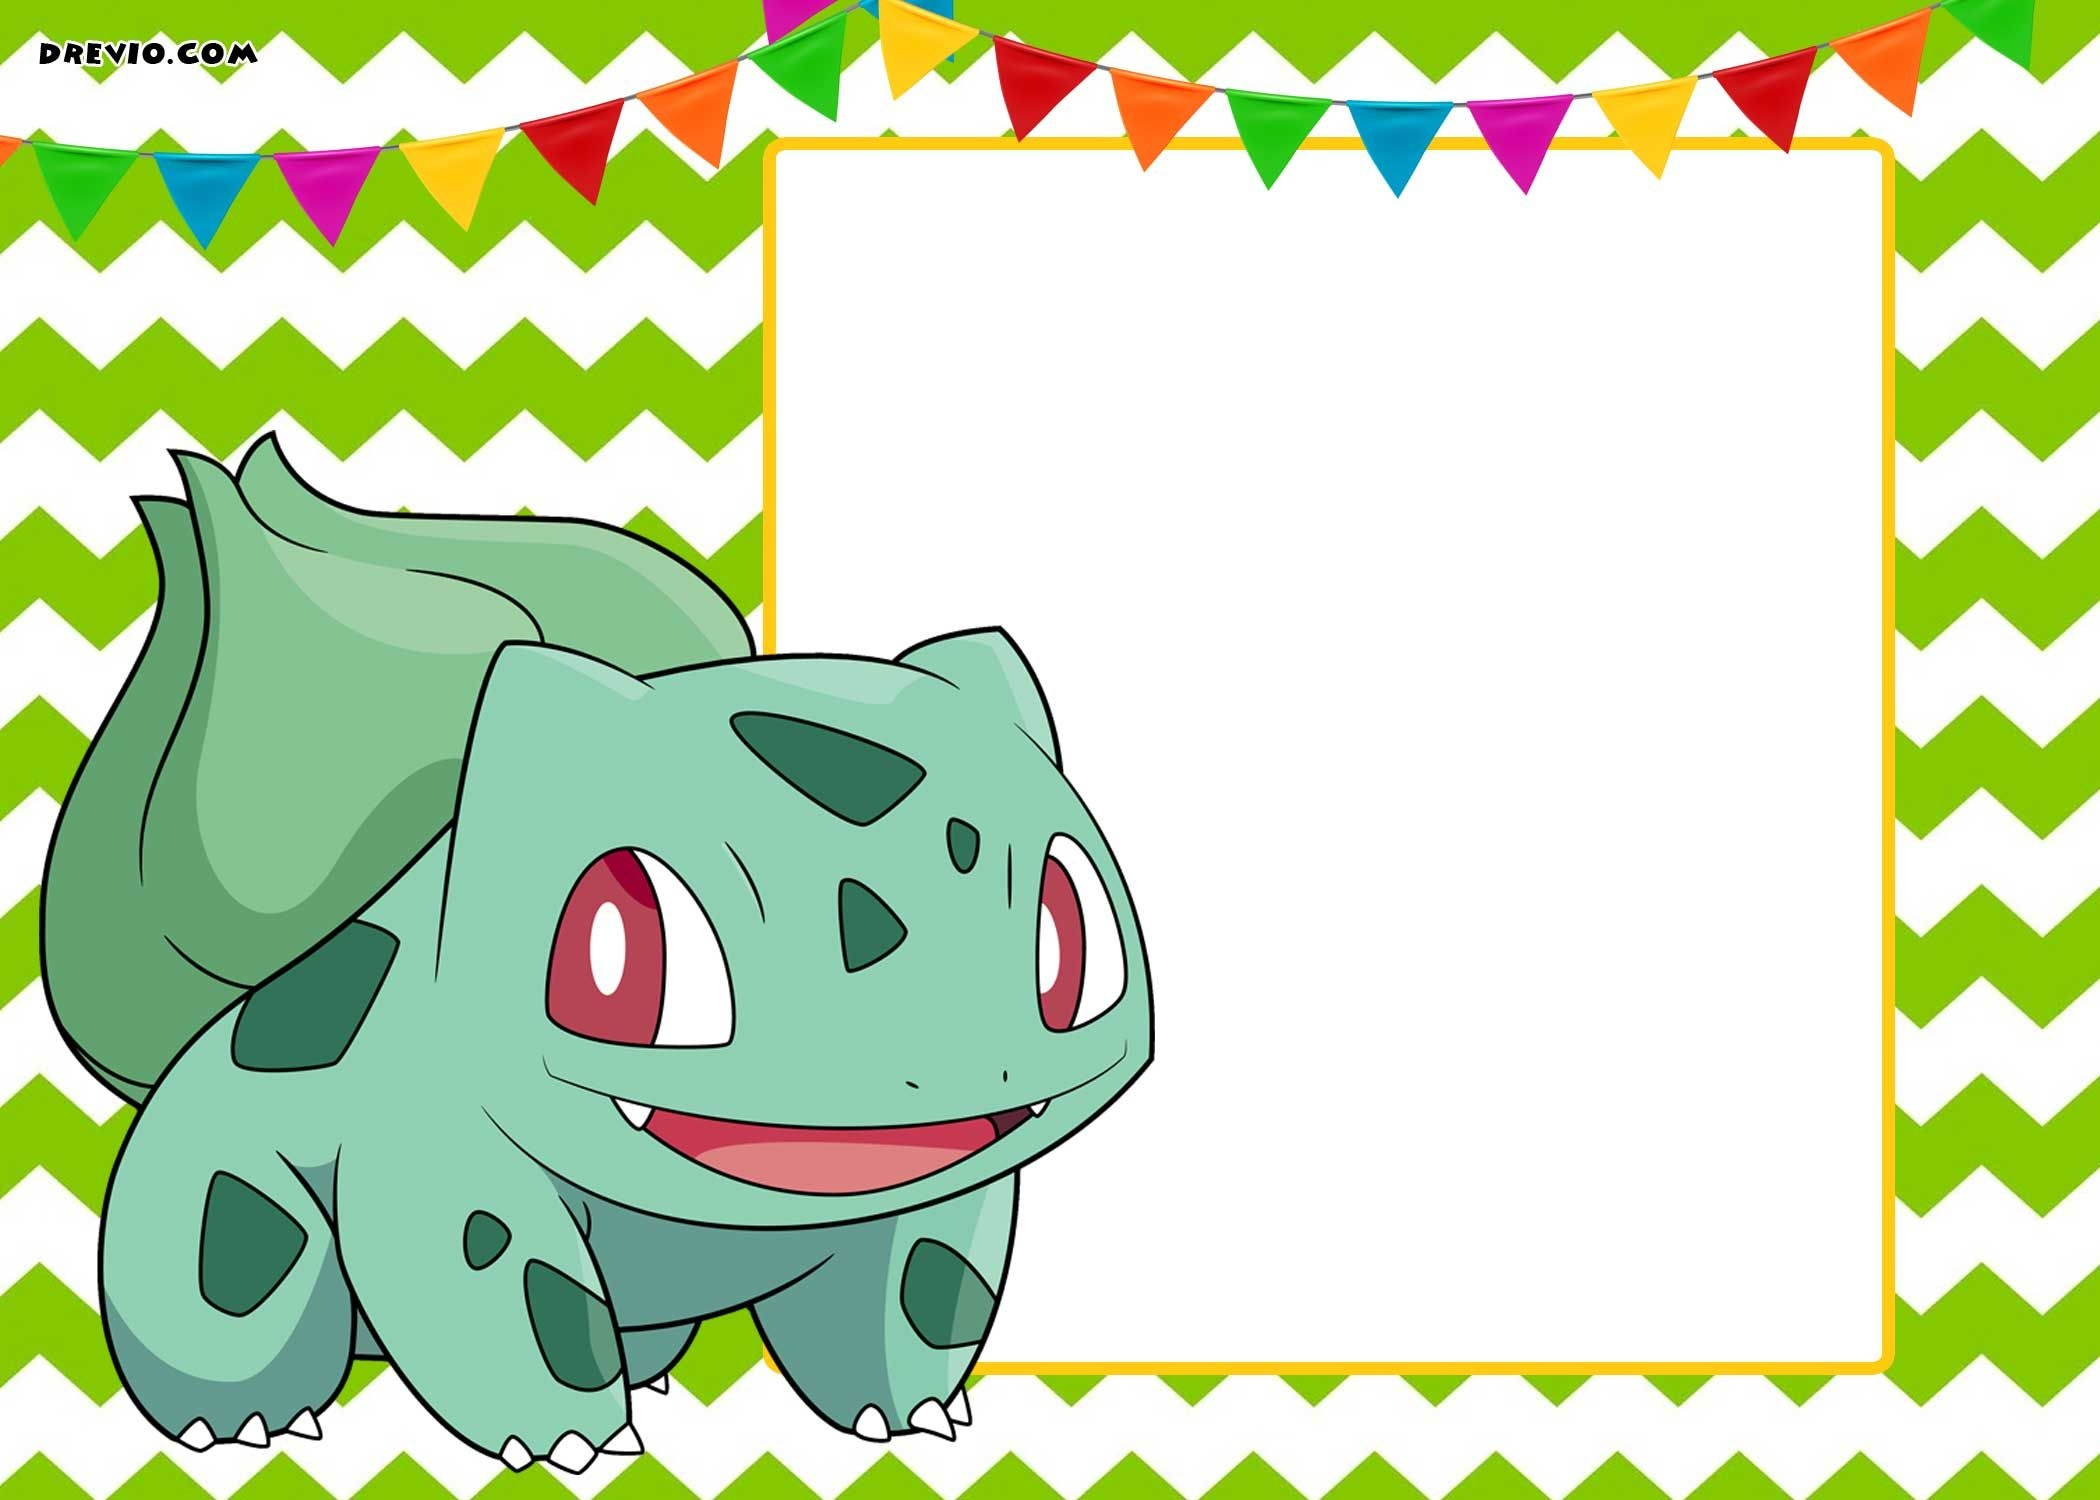 Free Printable Pokemon Invitation Templates | Free Printable - Pokemon Invitations Printable Free